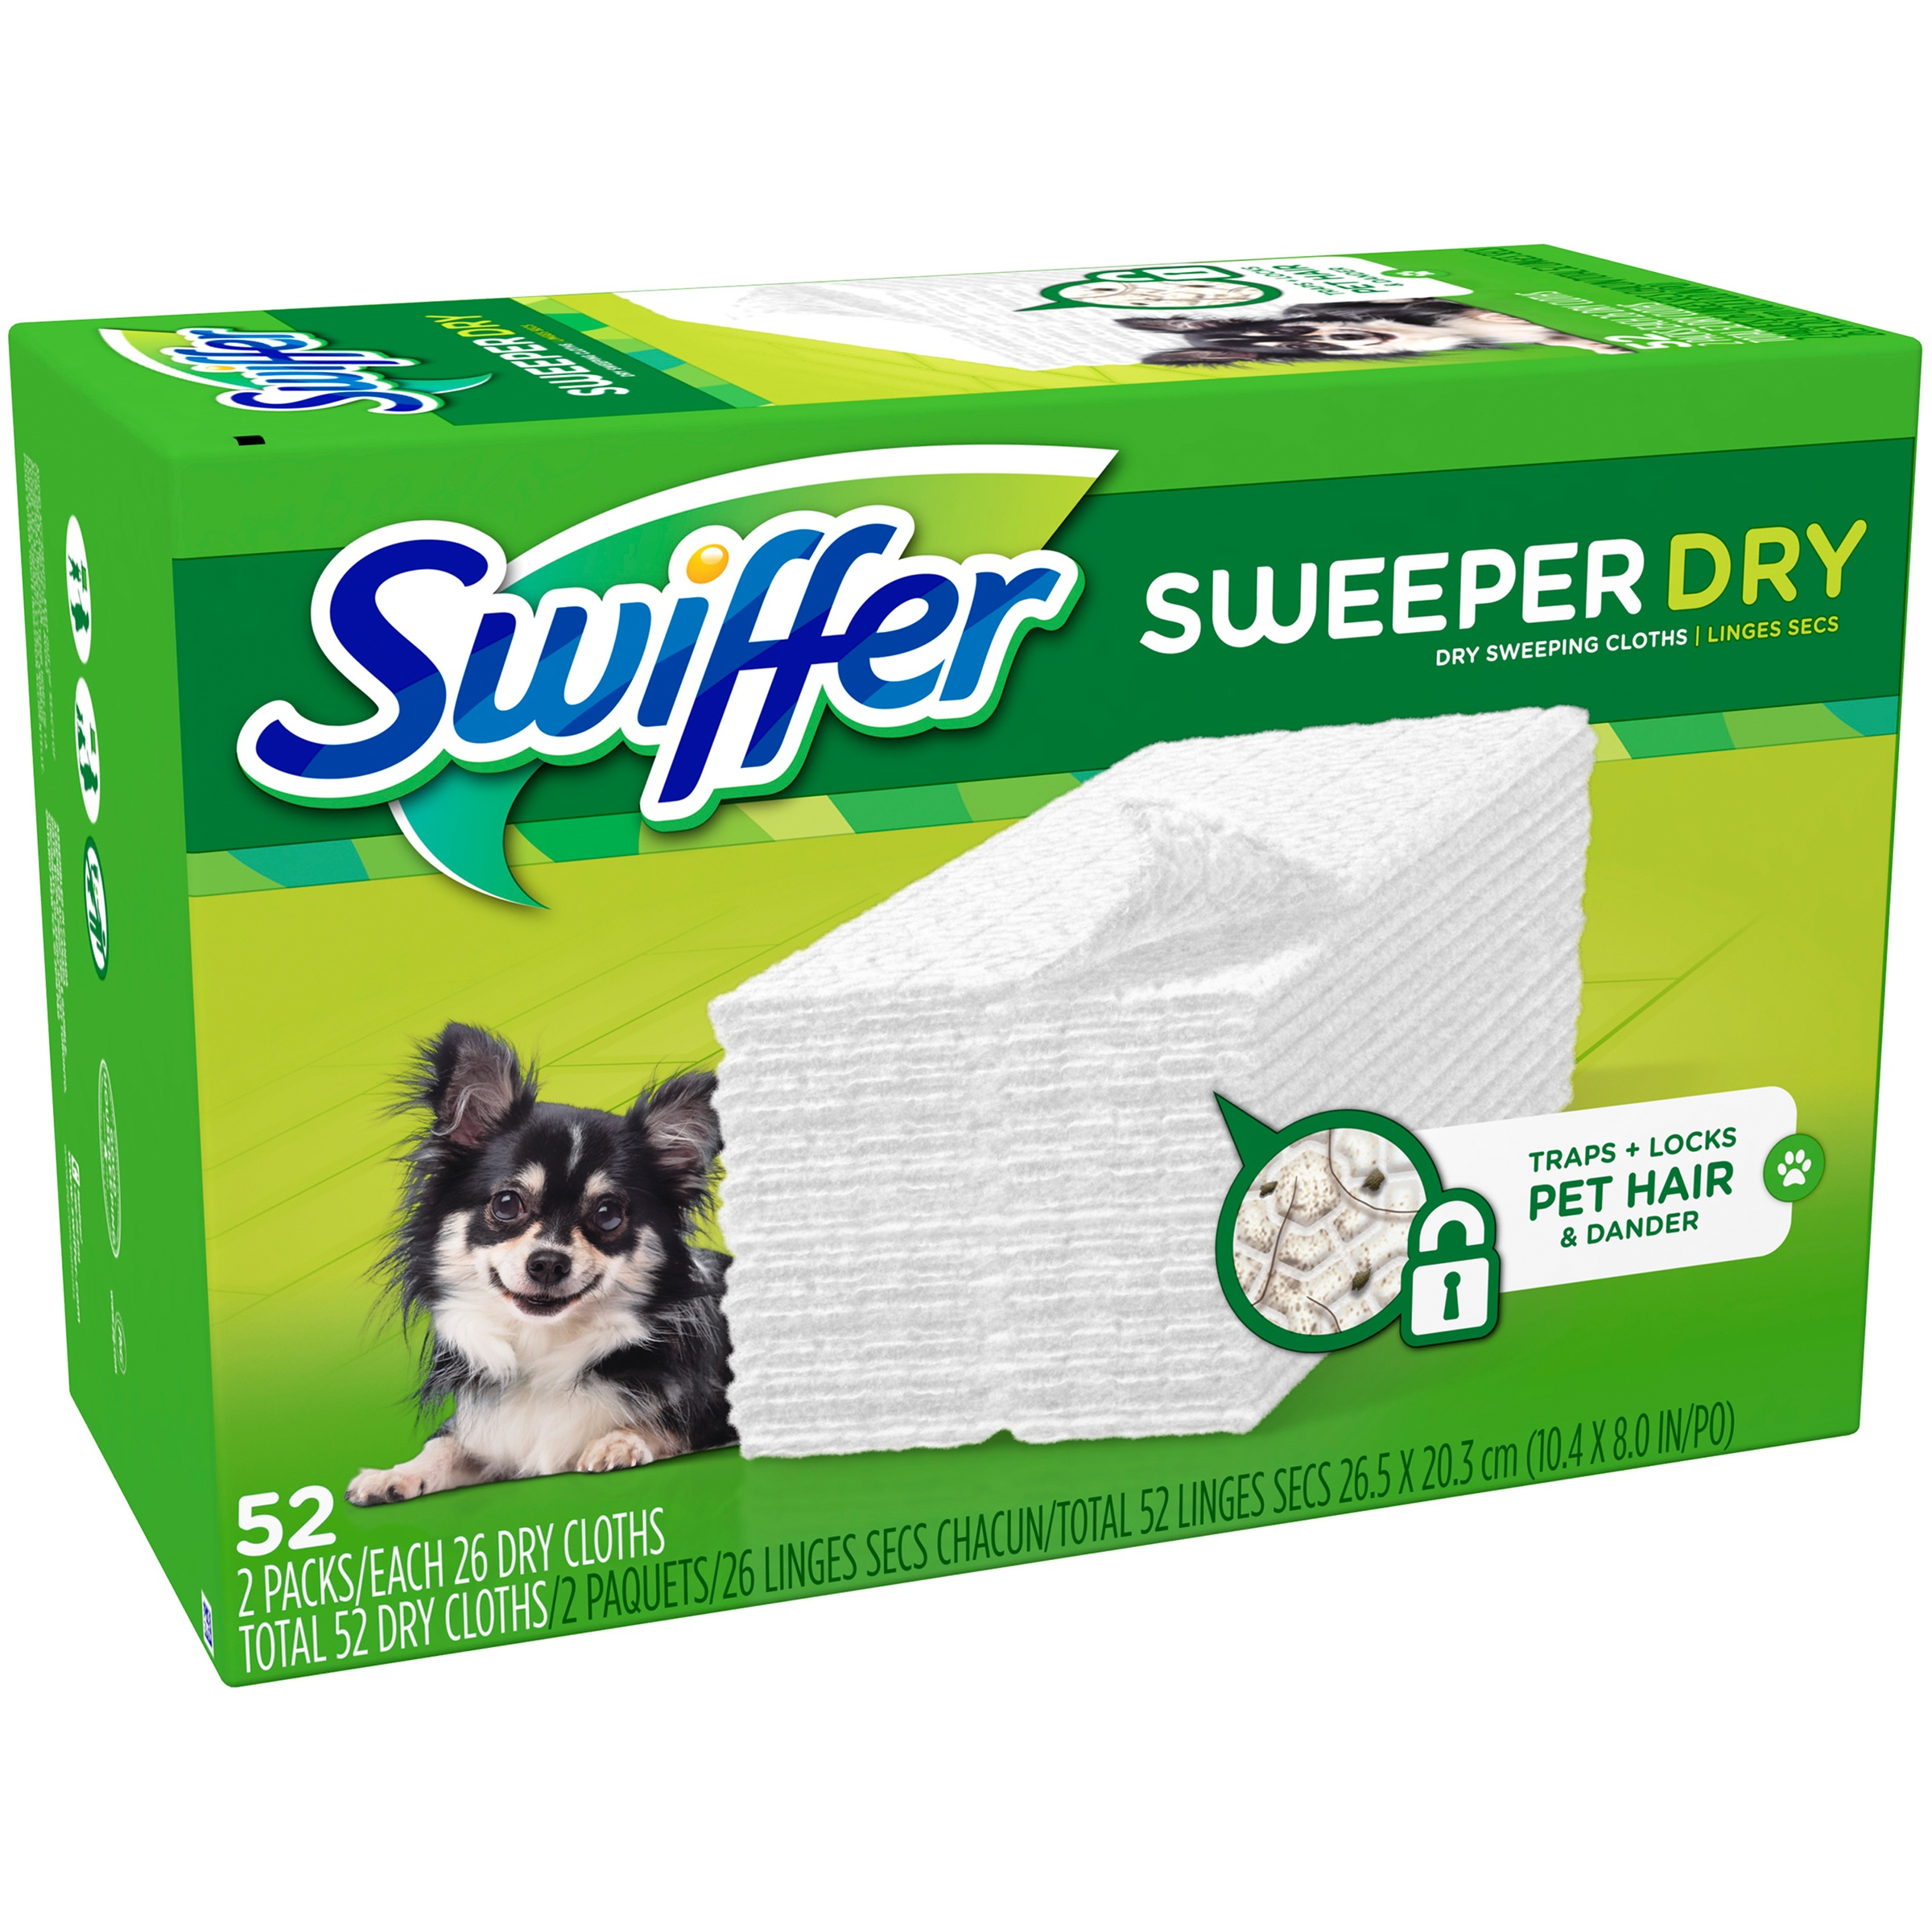 Swiffer Sweeper Dry Dry Sweeping Cloths 26 Ct, Pack of 2